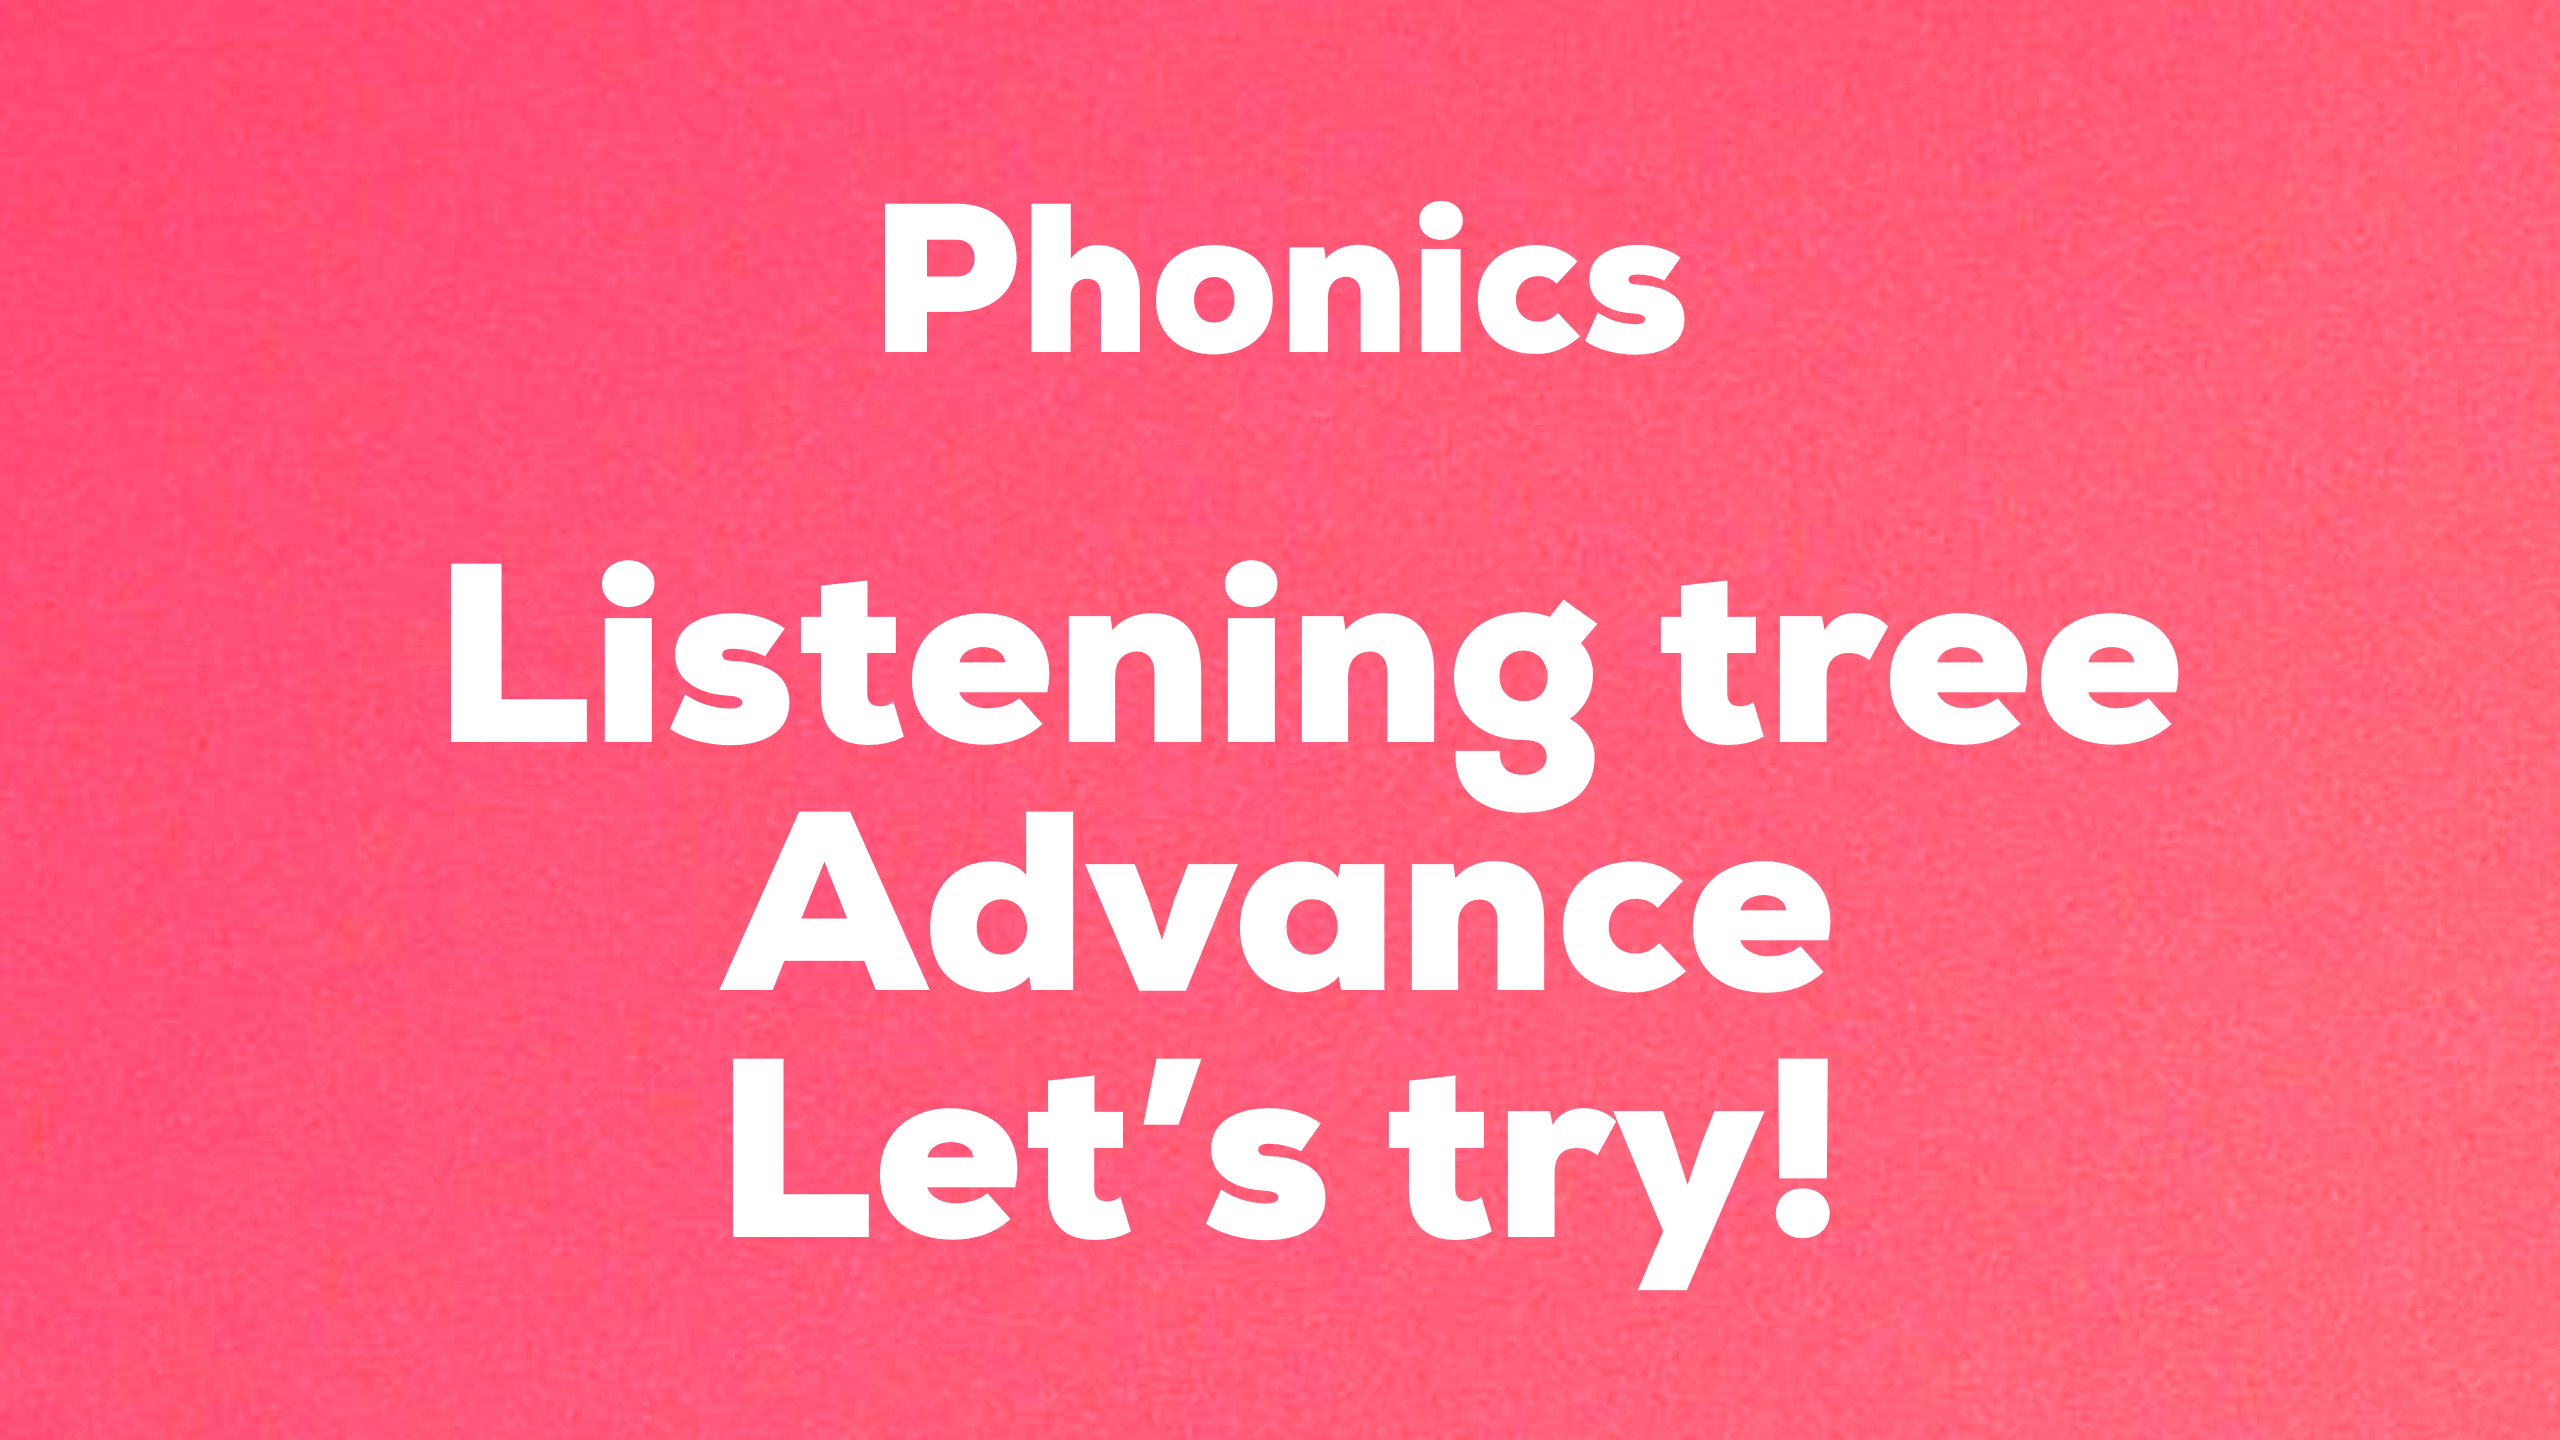 Phonics Listening tree advance 難易度☆☆☆☆☆